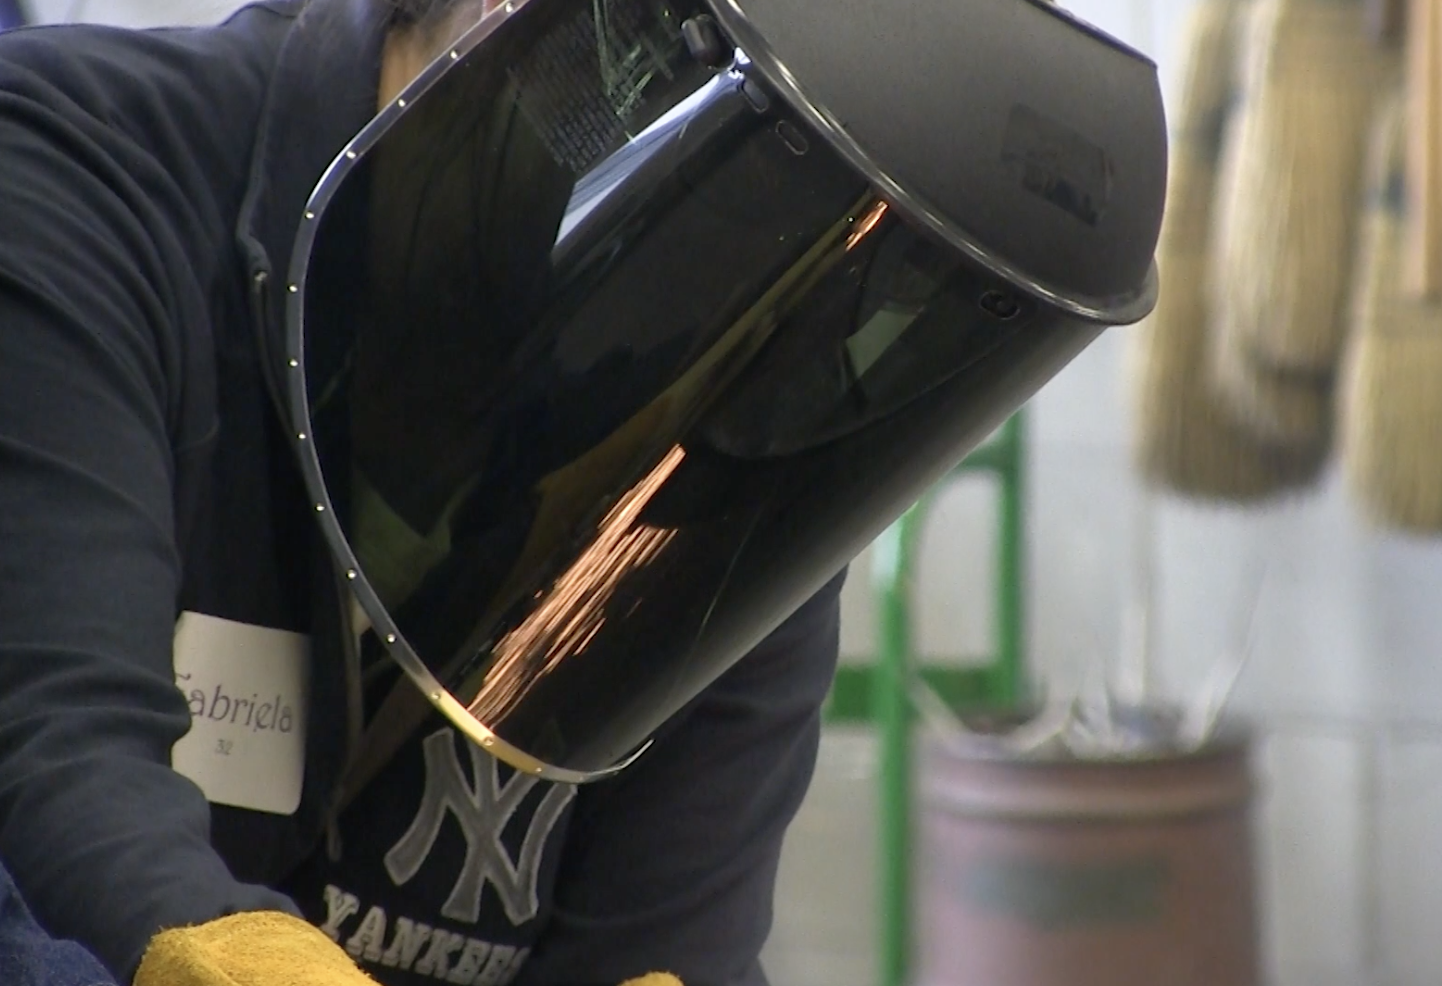 Meeting demand: AC industrial programs reach out to women (VIDEO)